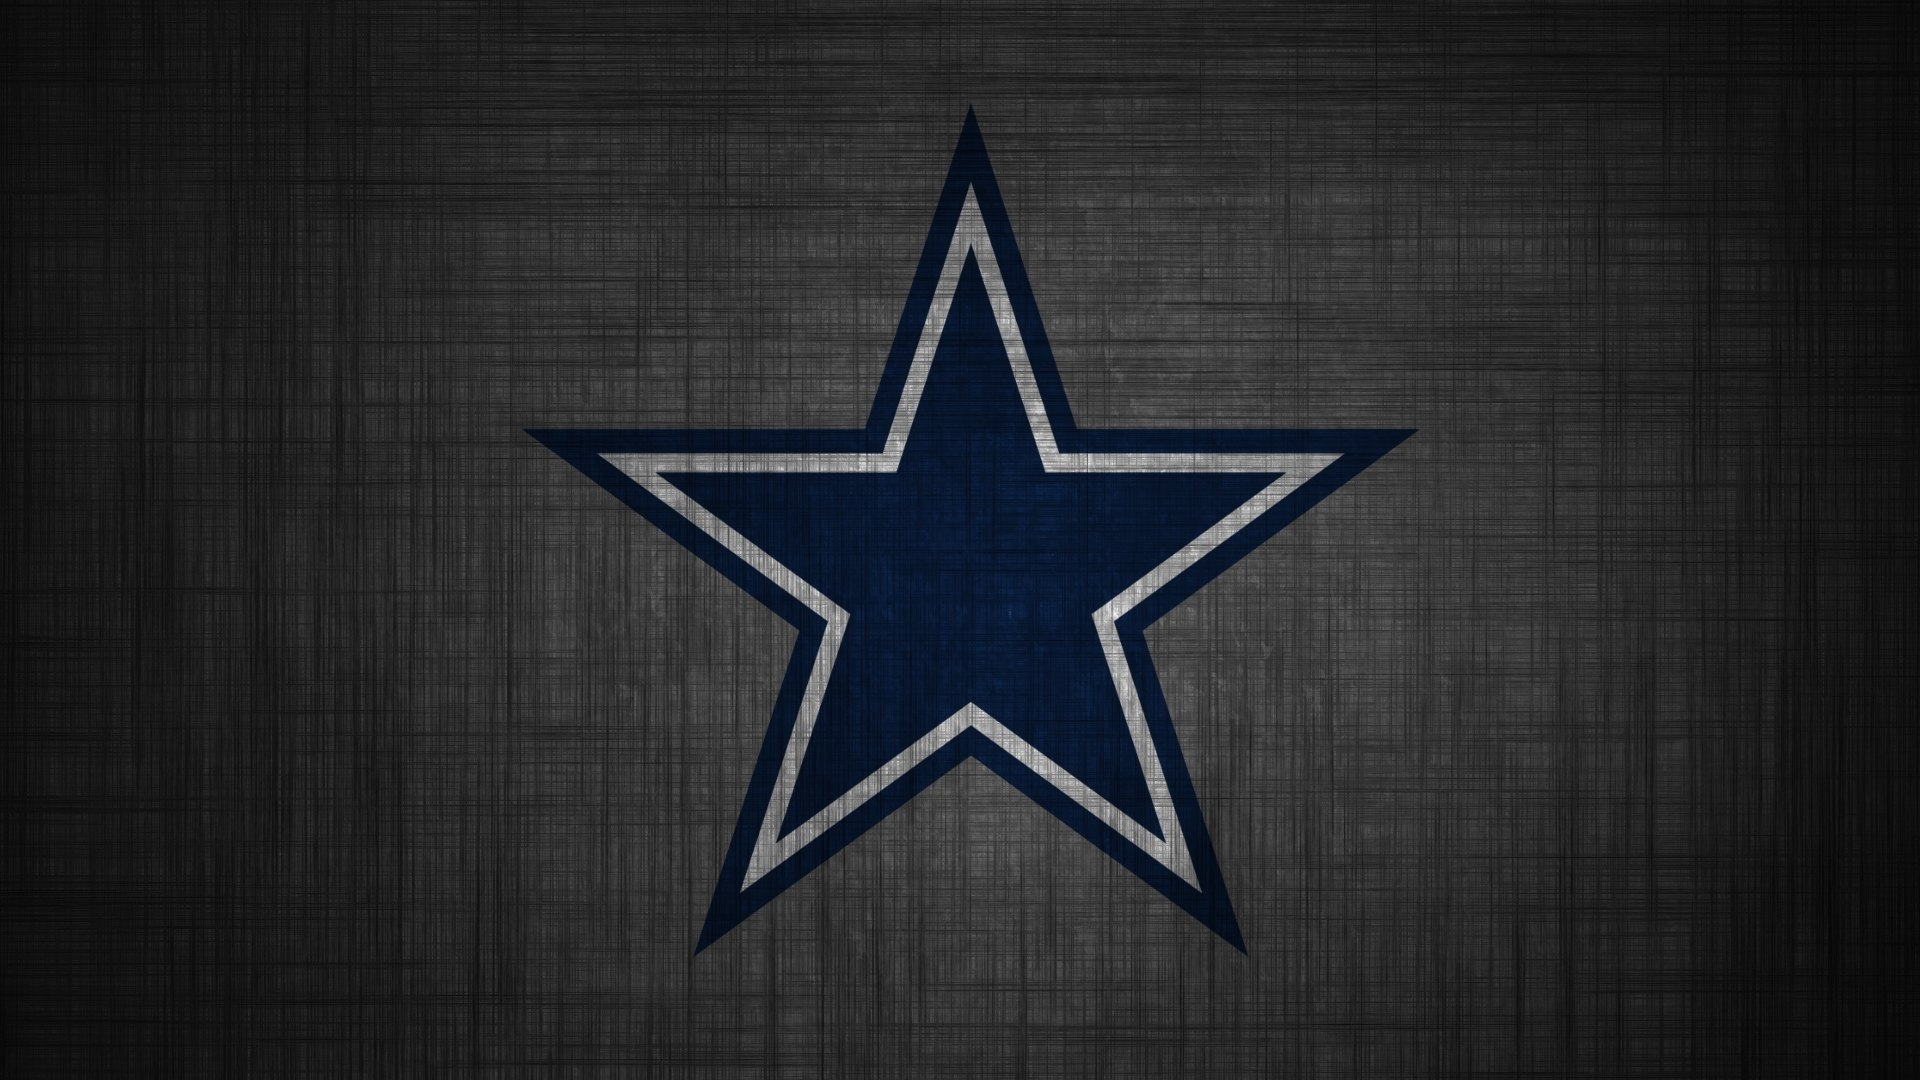 10 Most Popular Dallas Cowboys Desktop Wallpaper 2016 FULL HD 1080p For PC Background